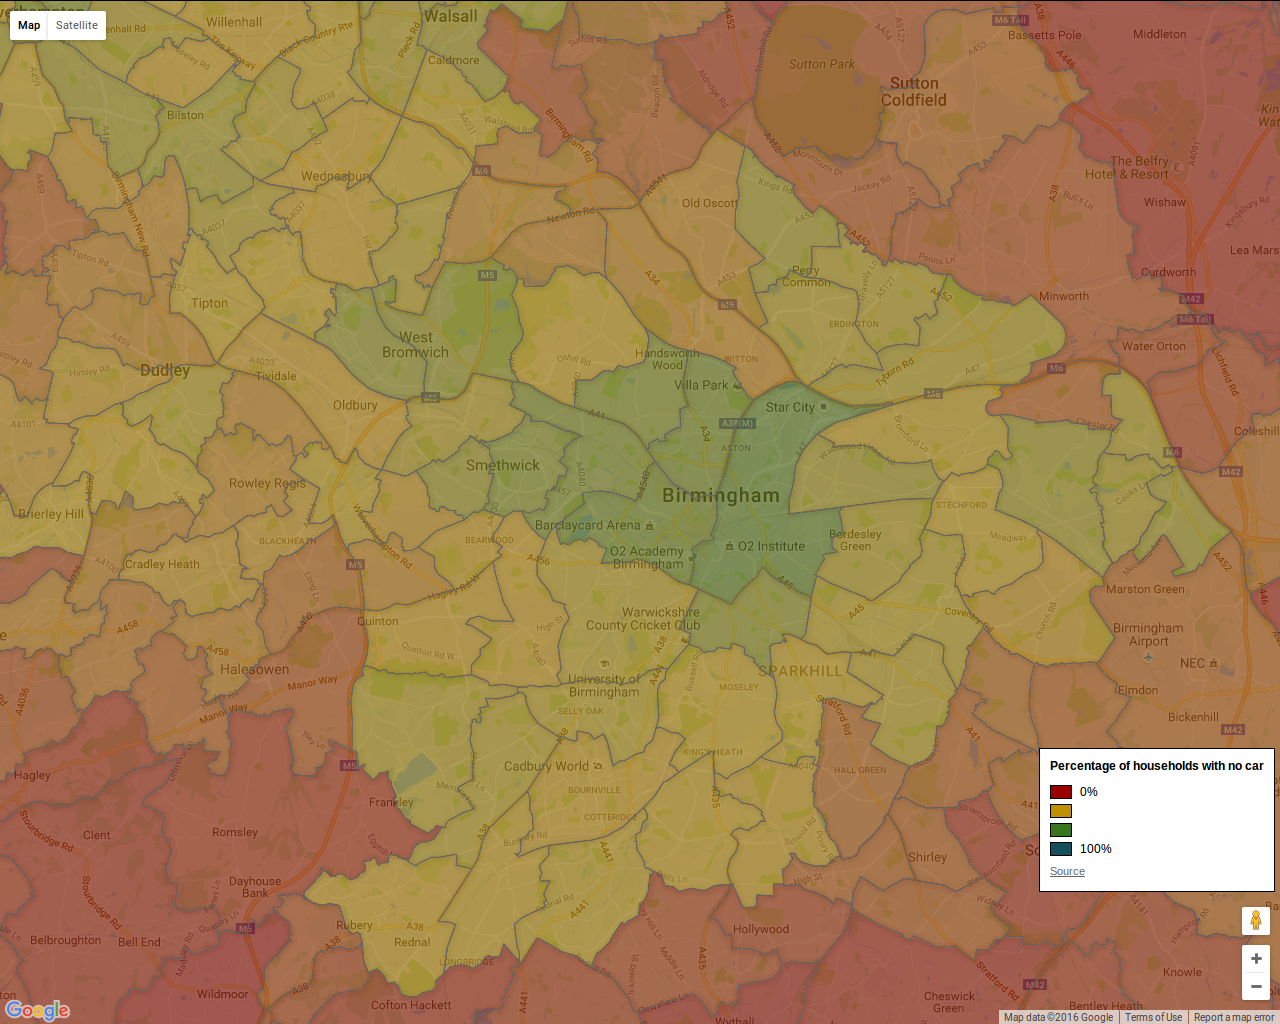 Car ownership in Birmingham - 2011